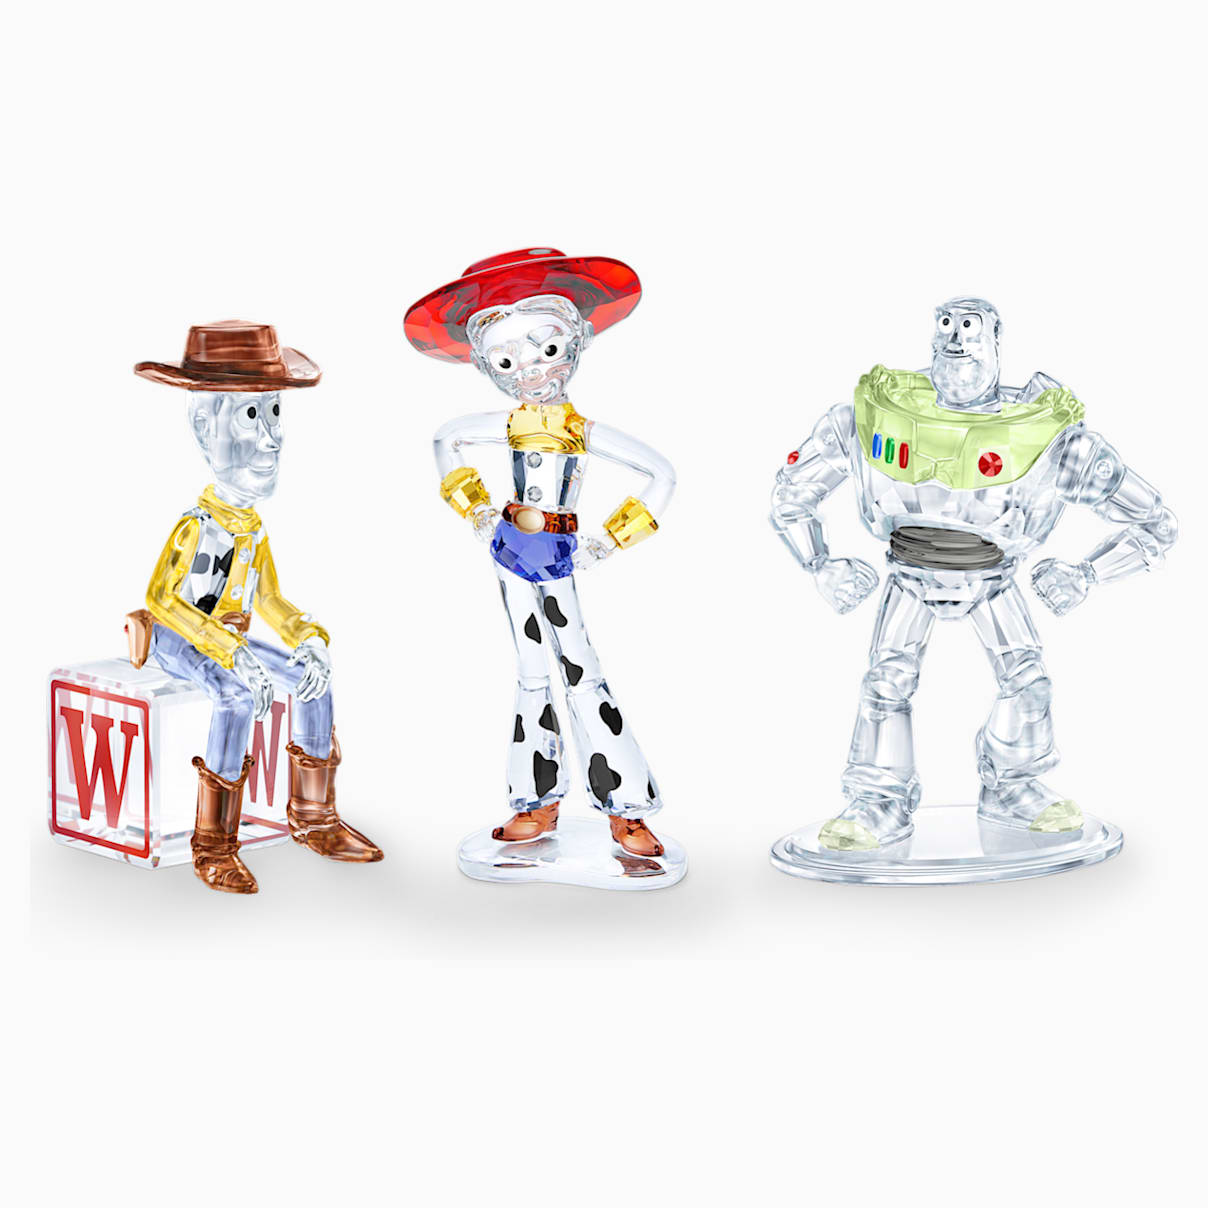 Set en ligne #1 Toy Story